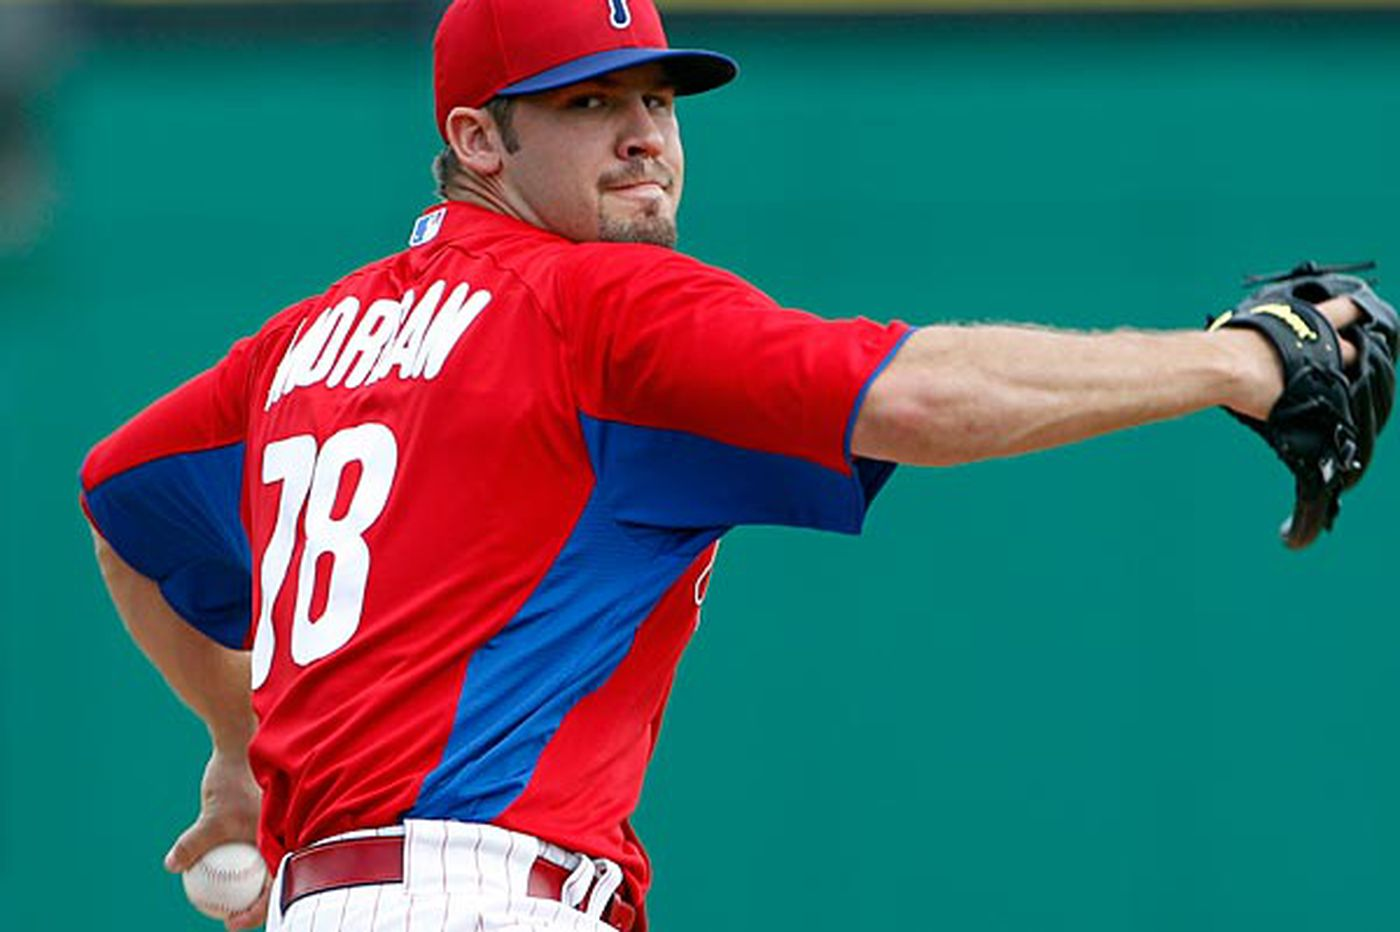 Phillies Notebook: Thoughts on who will take Roy Halladay's spot